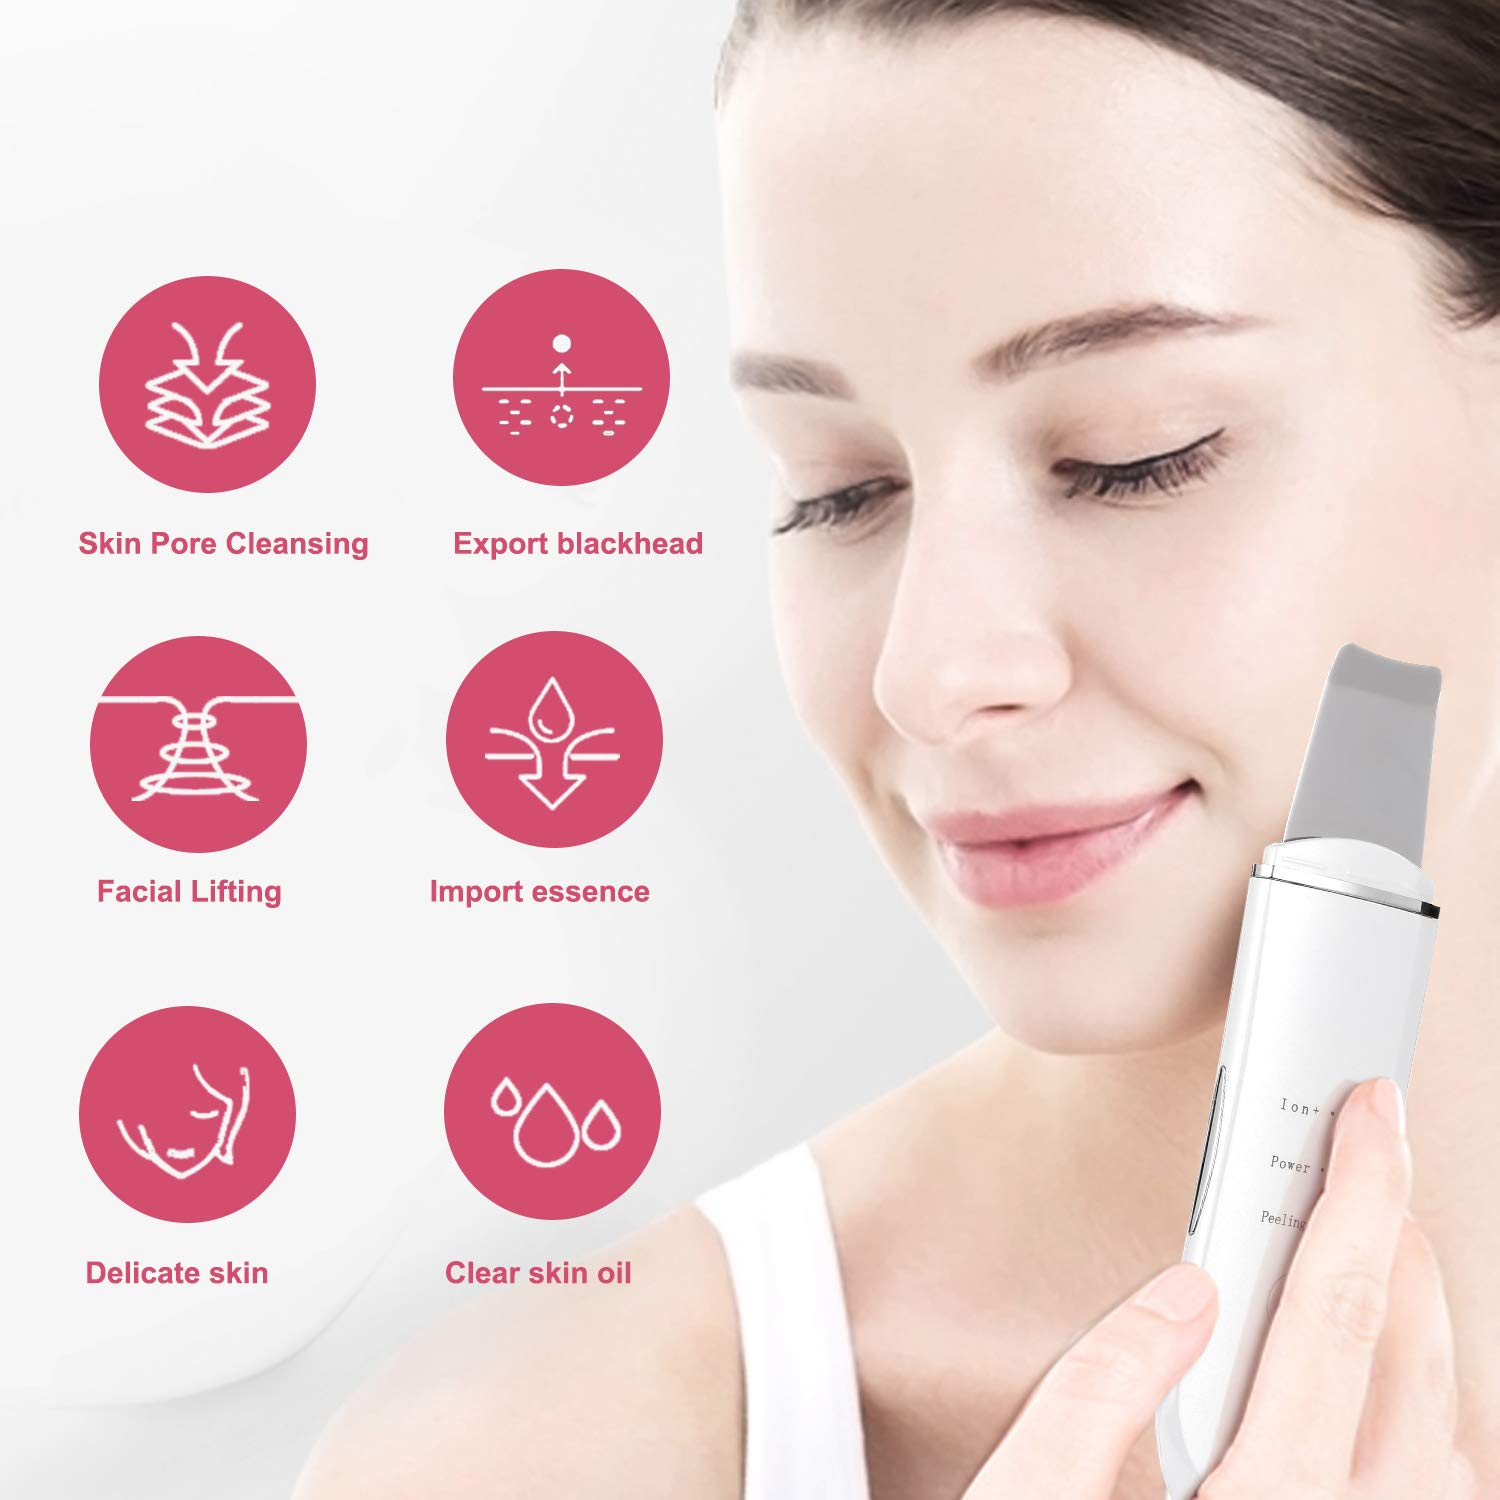 Facial Skin Scrubber, Face Spatula Portable Pores Cleanser Blackhead Remover Comedone Extractor Skin Exfoliator and Facial Lifting Tool, Portable Rechargeable.